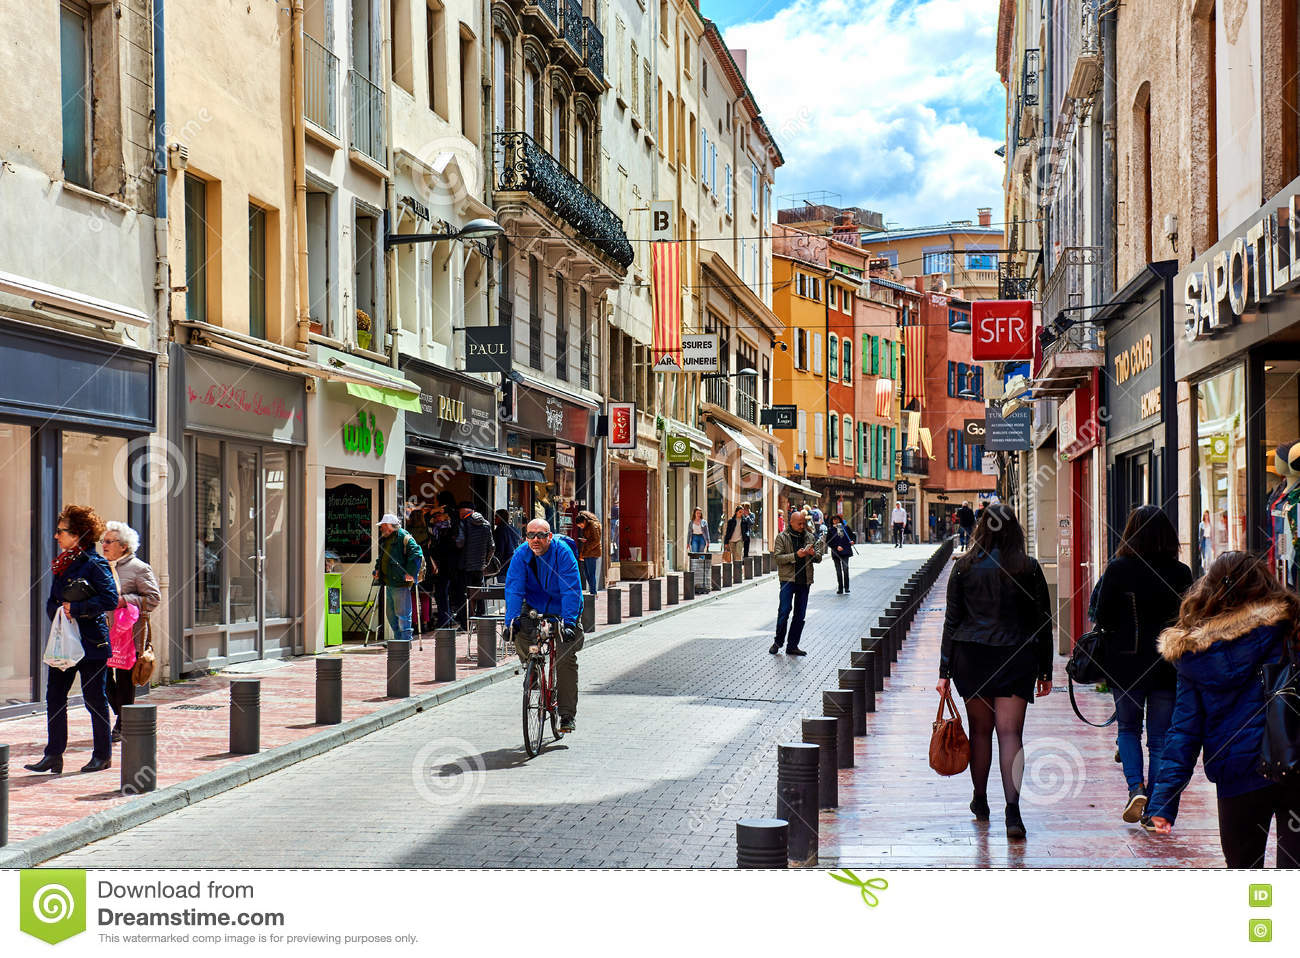 But Perpignan Perpignan Main Commercial Street In The Old Town France Editorial